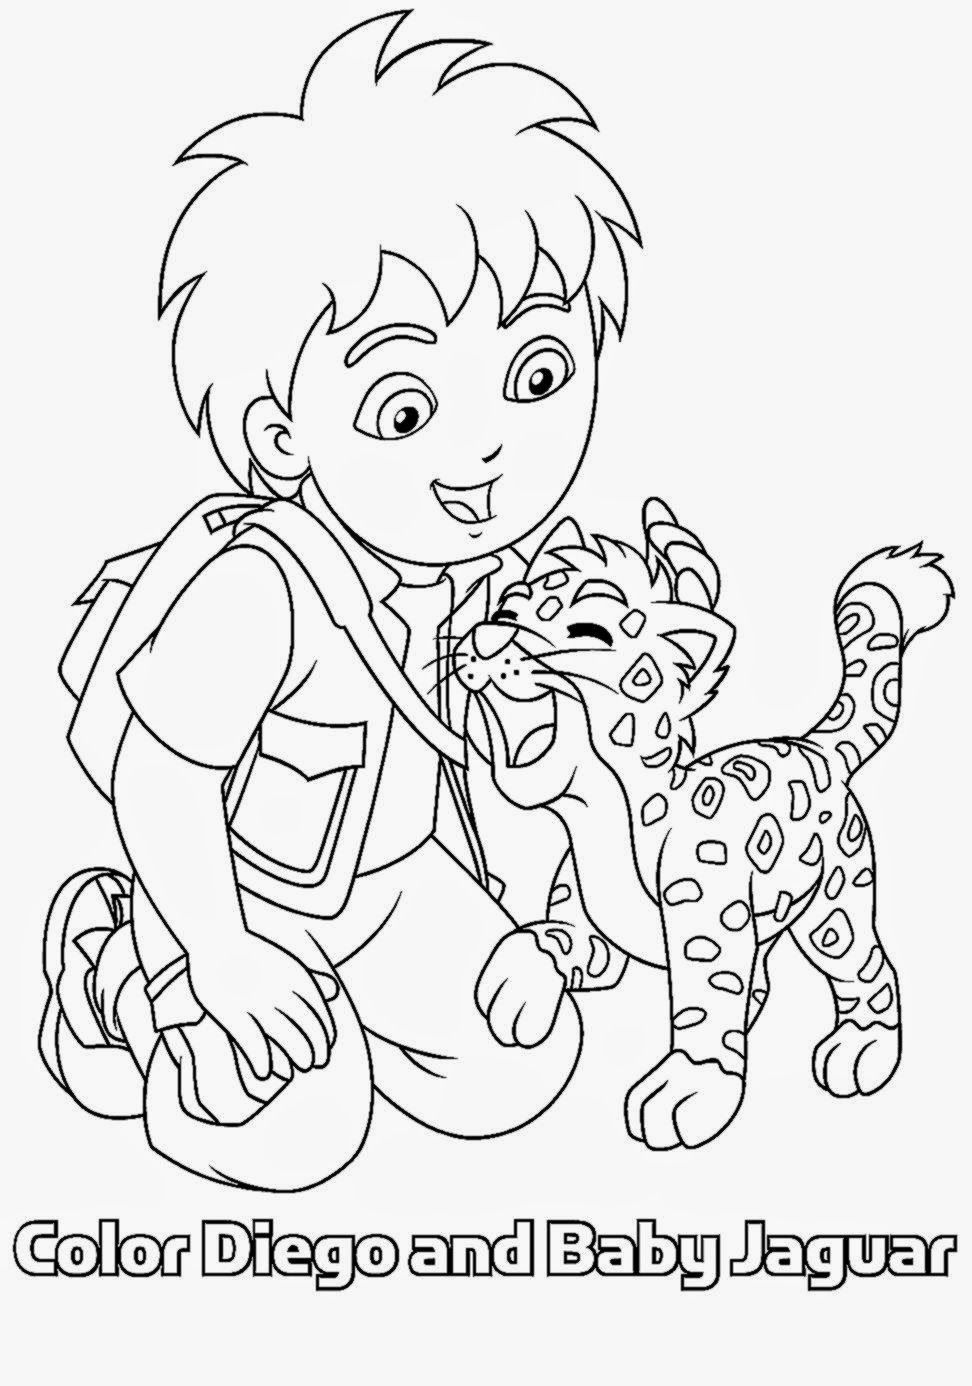 Diego Coloring Book | Free Coloring Pages - Coloring Home